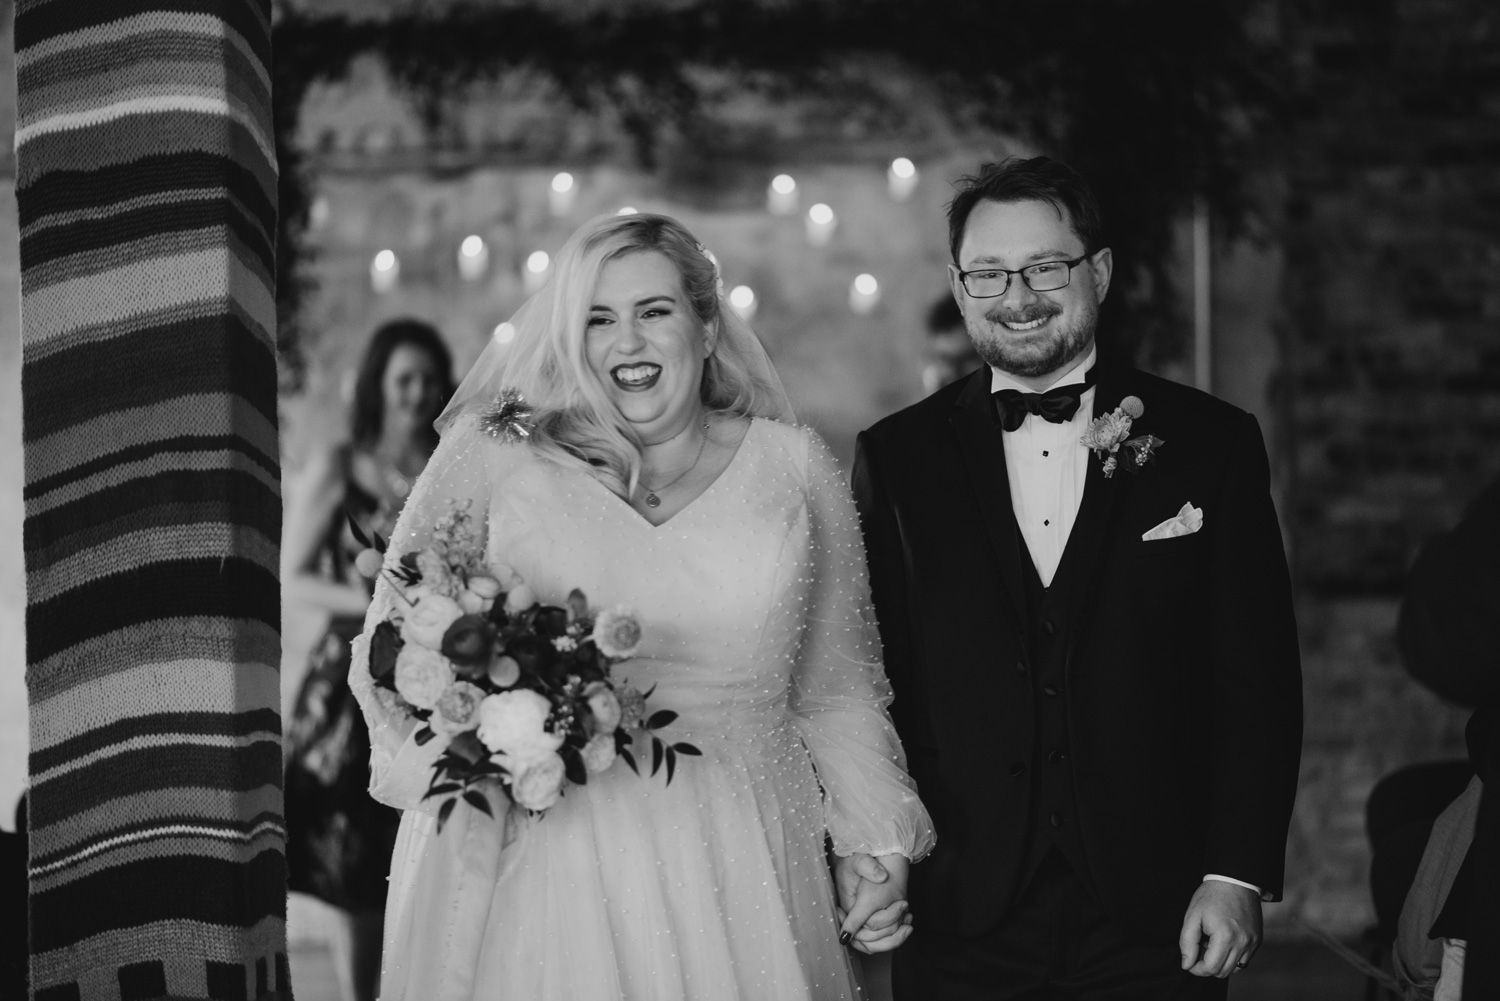 Black and white image of bride and groom walking down aisle after announced as husband and wife with big smiles